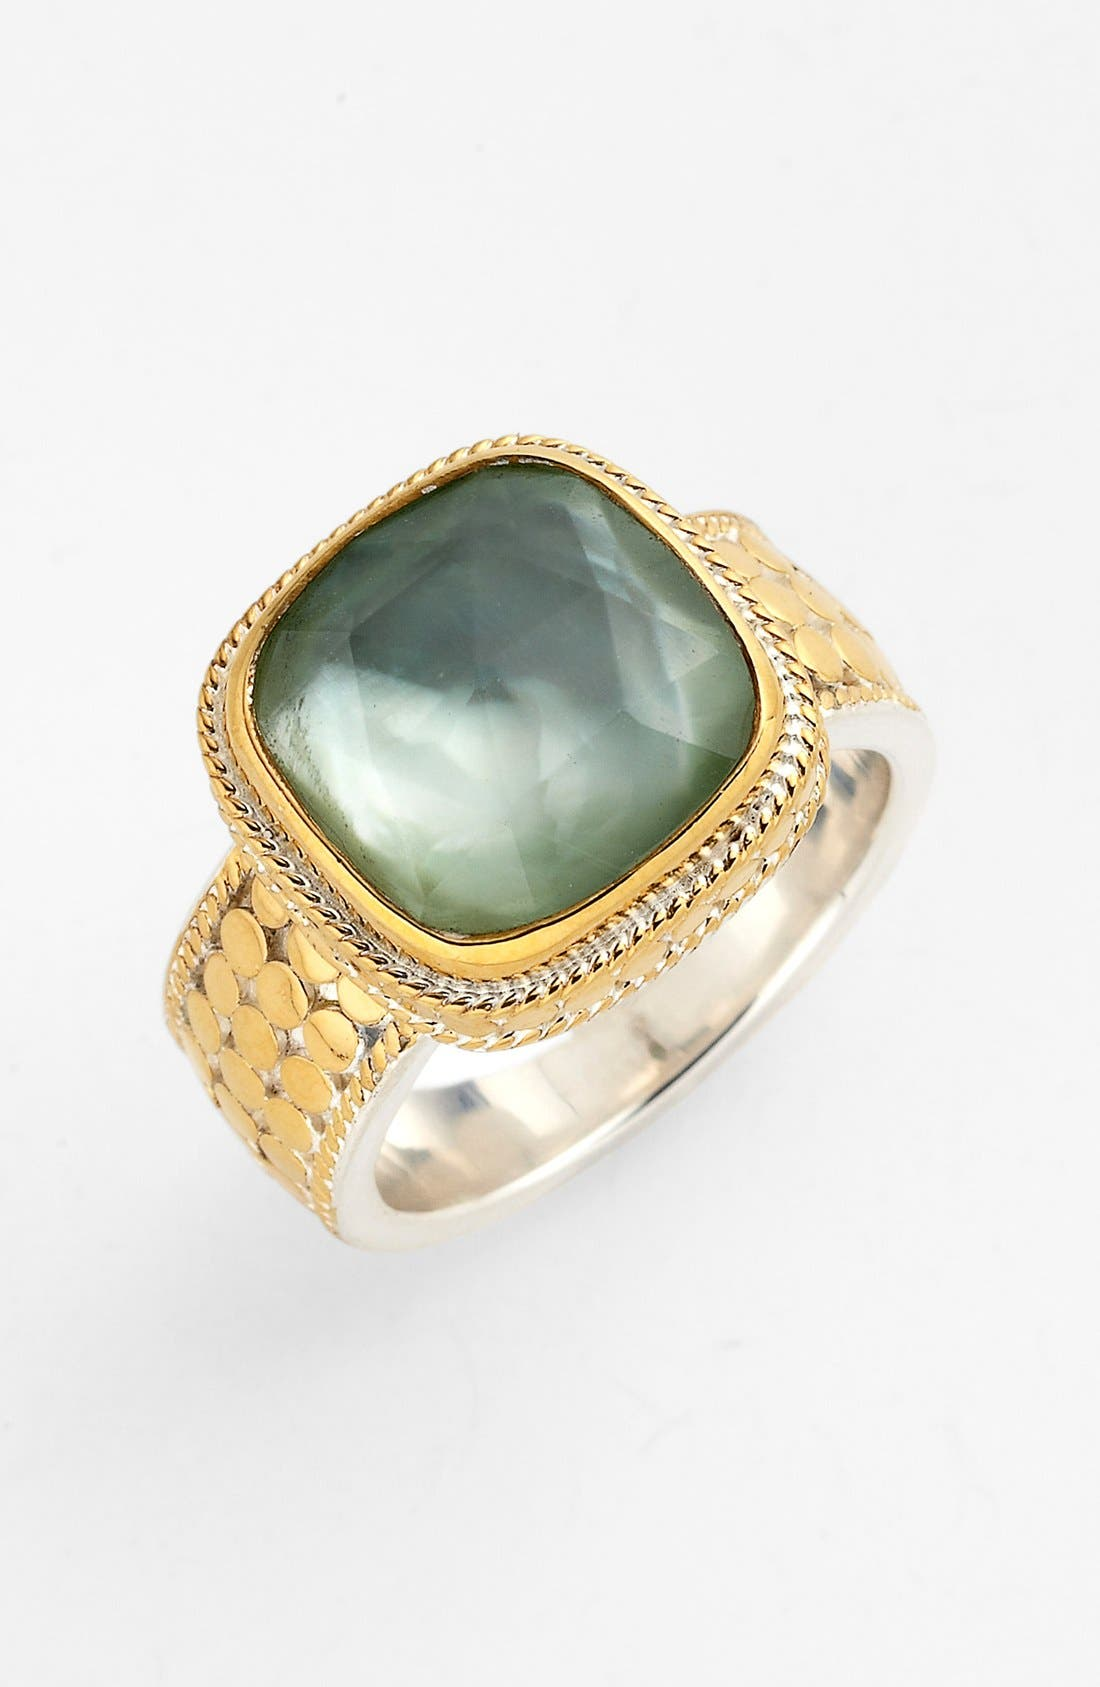 Main Image - Anna Beck 'Gili' Square Doublet Ring